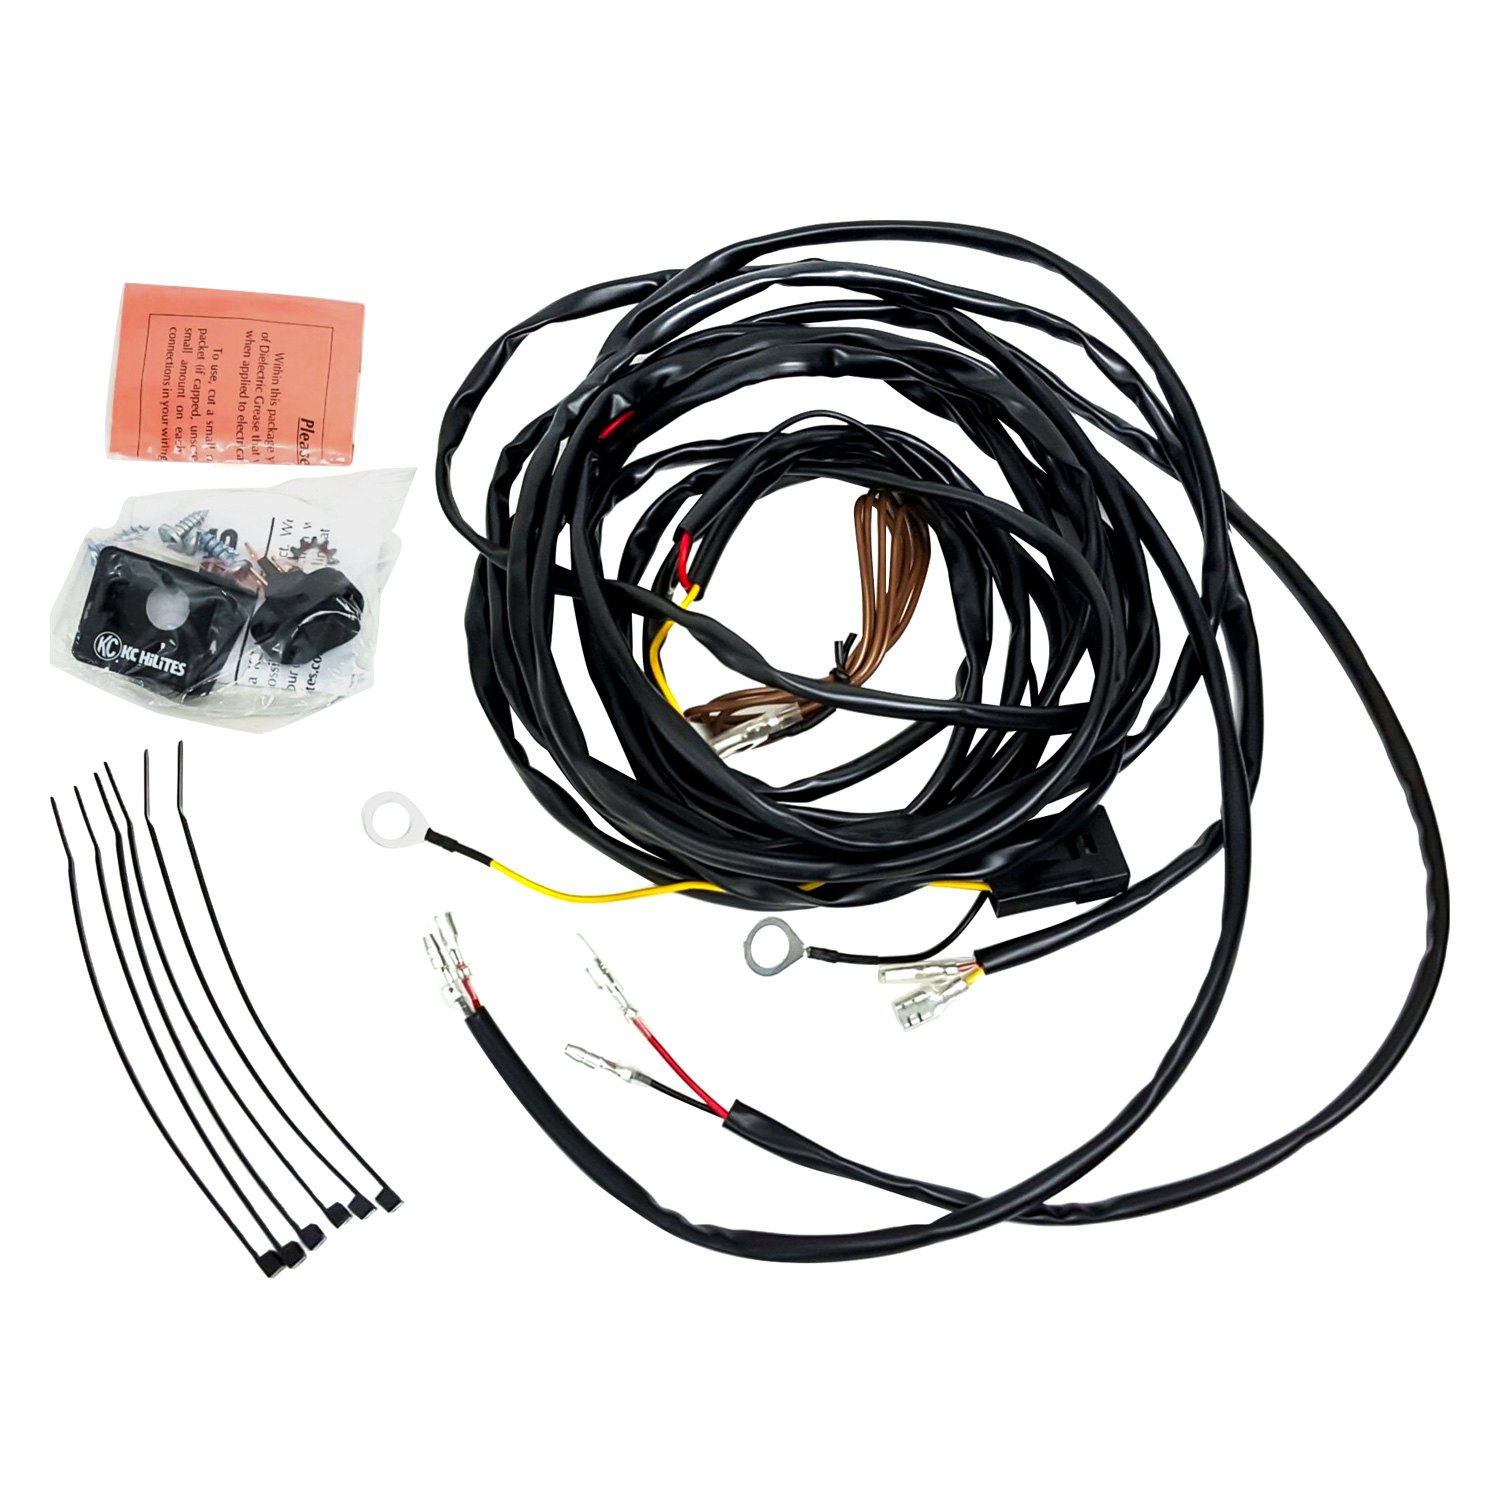 kc hilites® 63082 - wiring harness for two cyclone led lights  carid.com